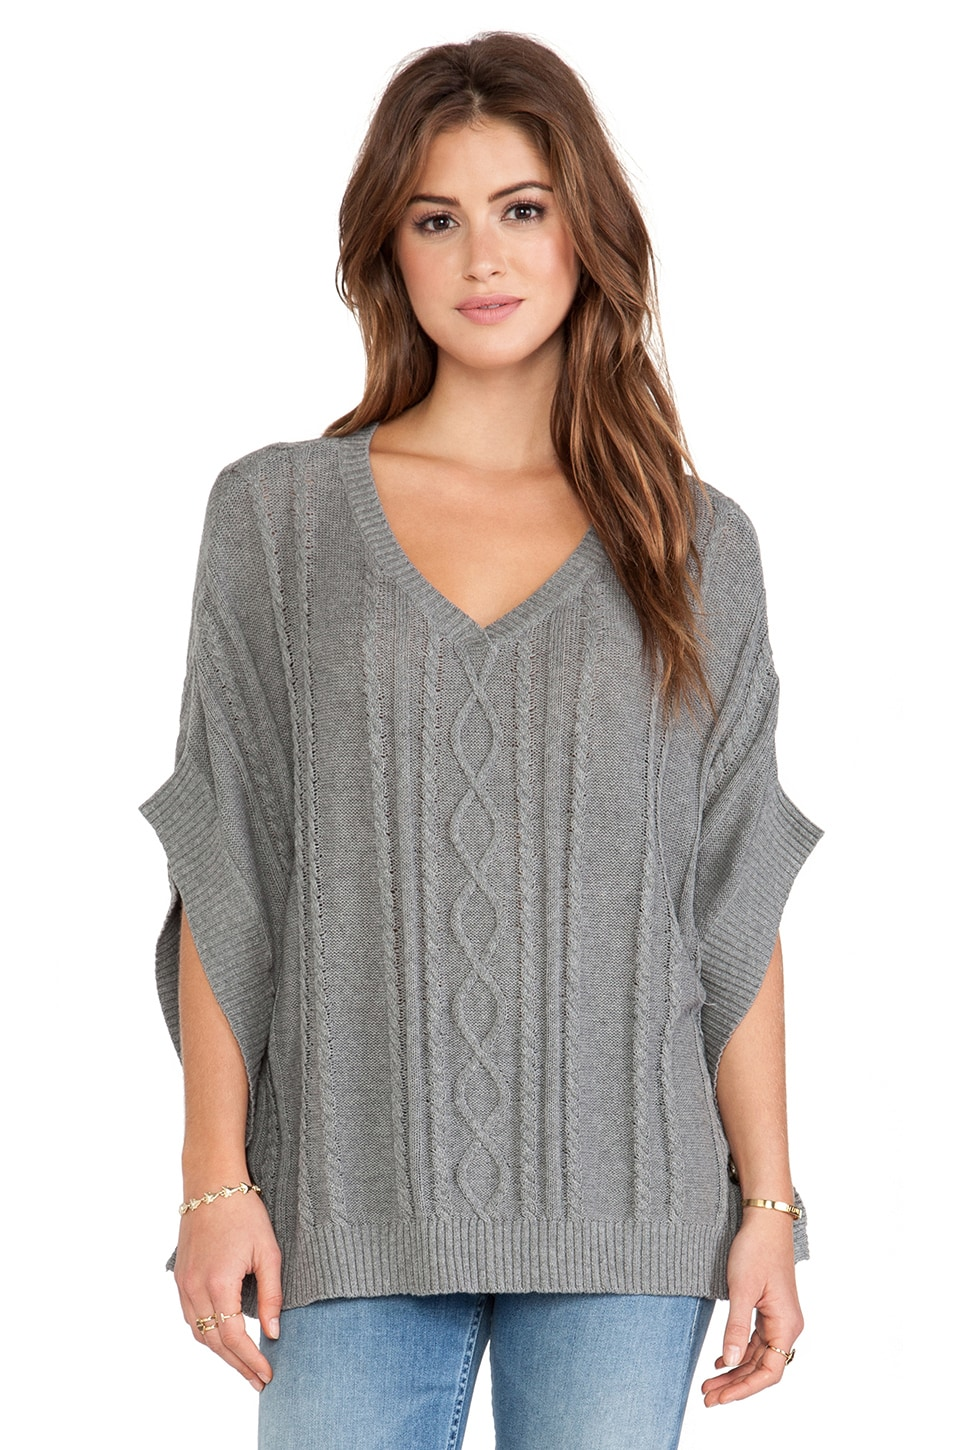 LA Made Boxy Cut Poncho in Heather Gray